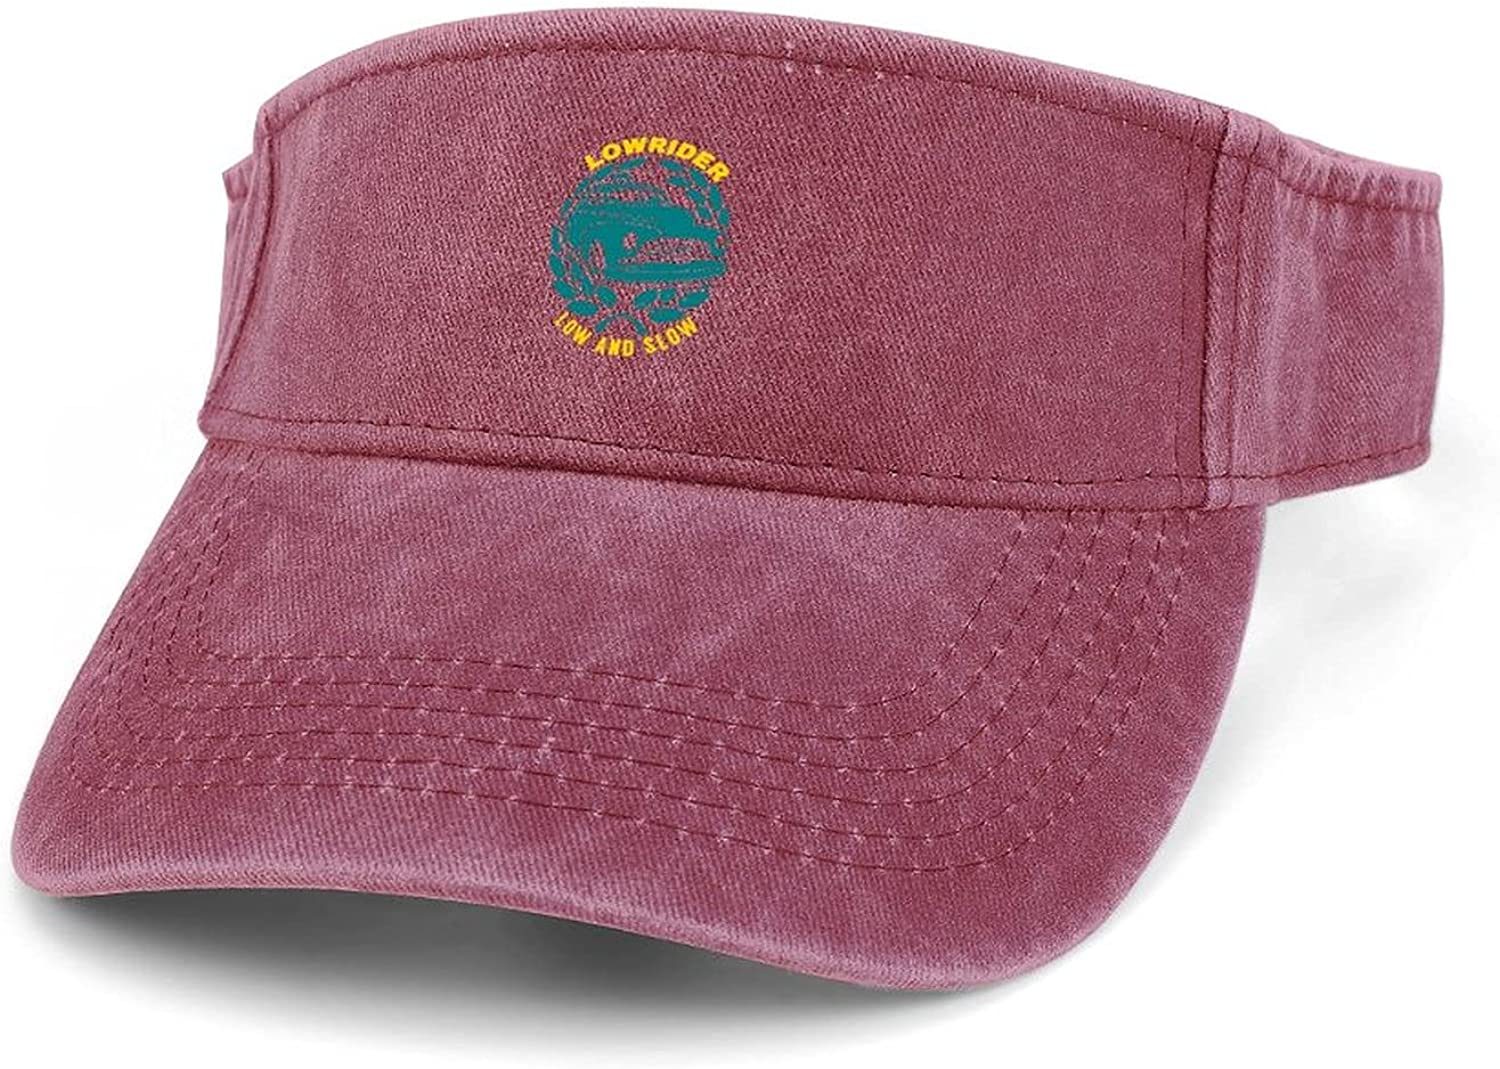 Lowrider Low and Slow Max 66% OFF Women Adjustable Outstanding Clip Wide Visor Brim S On